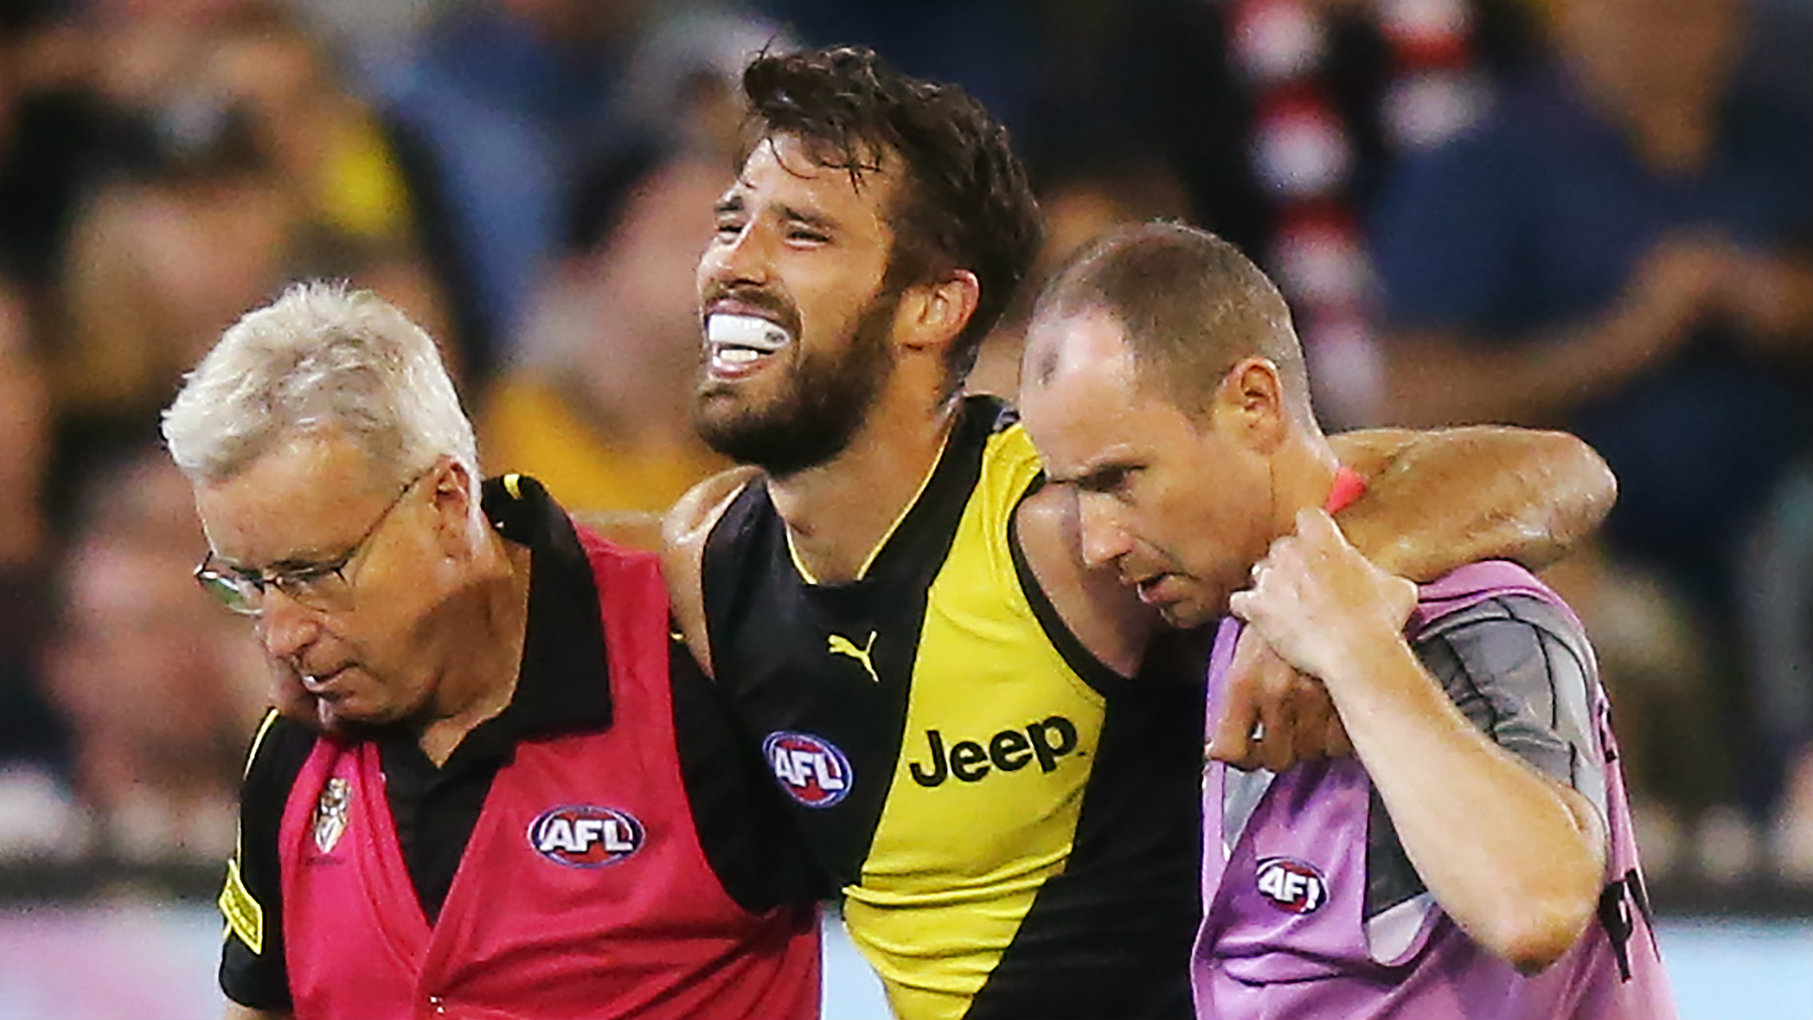 Alex Rance Injury: Scans confirm Richmond defender has ACL injury, will miss rest of the season